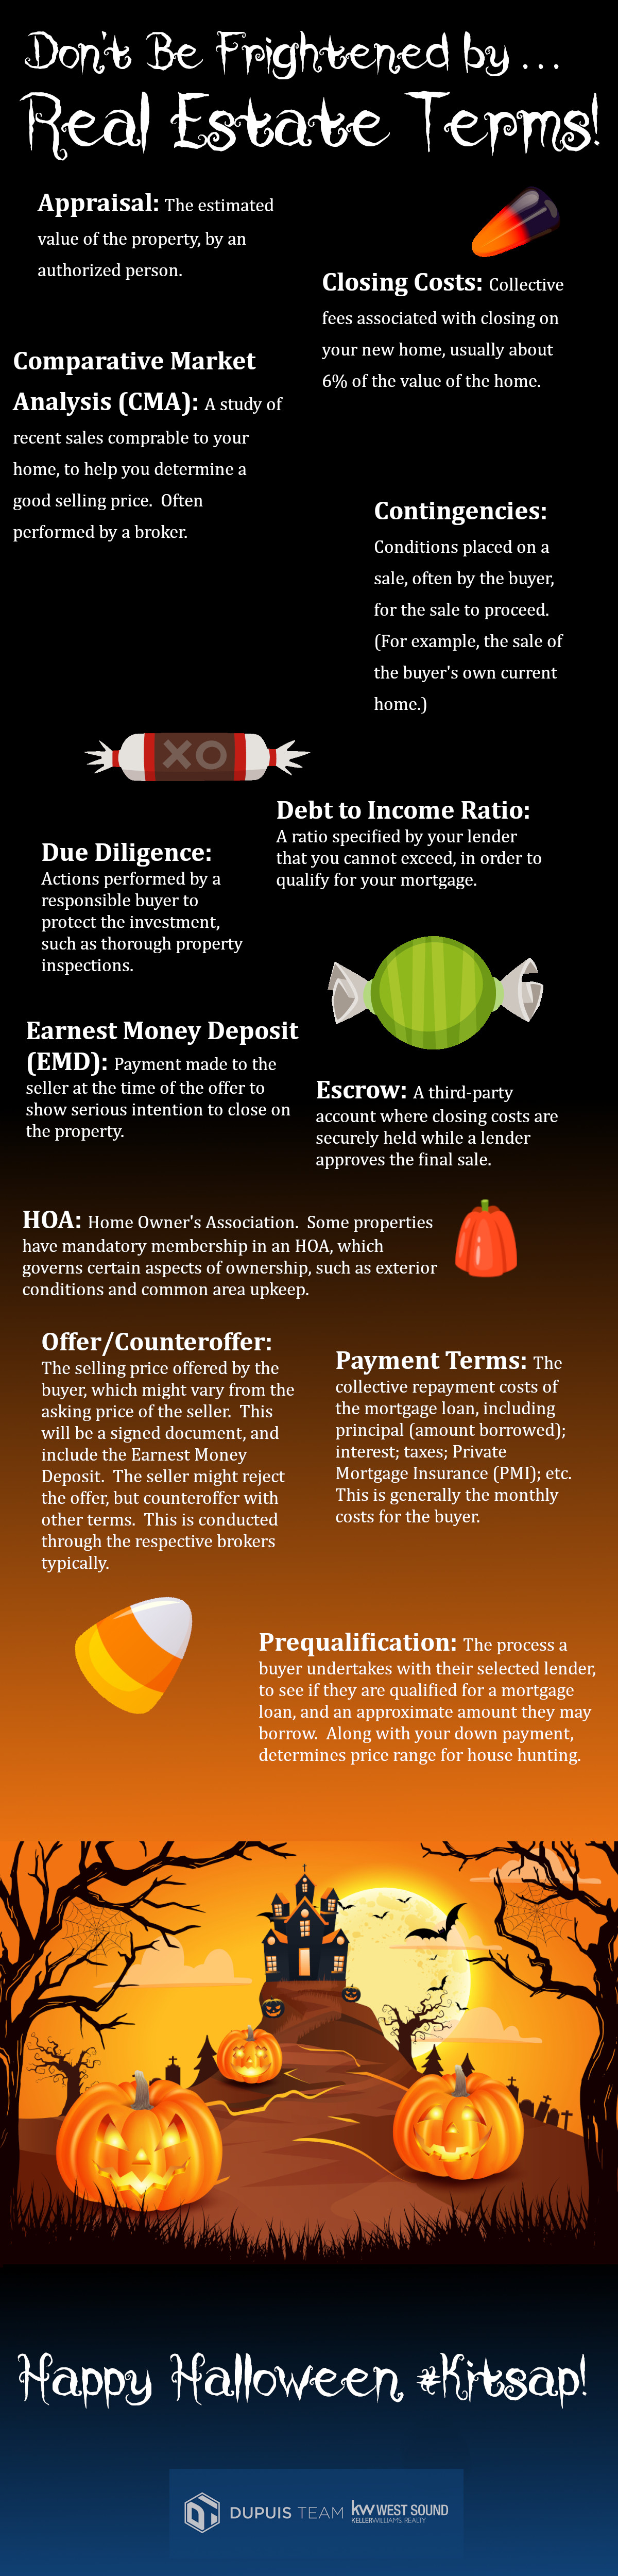 Don't Be Frightened By Real Estate Terms - Infographic